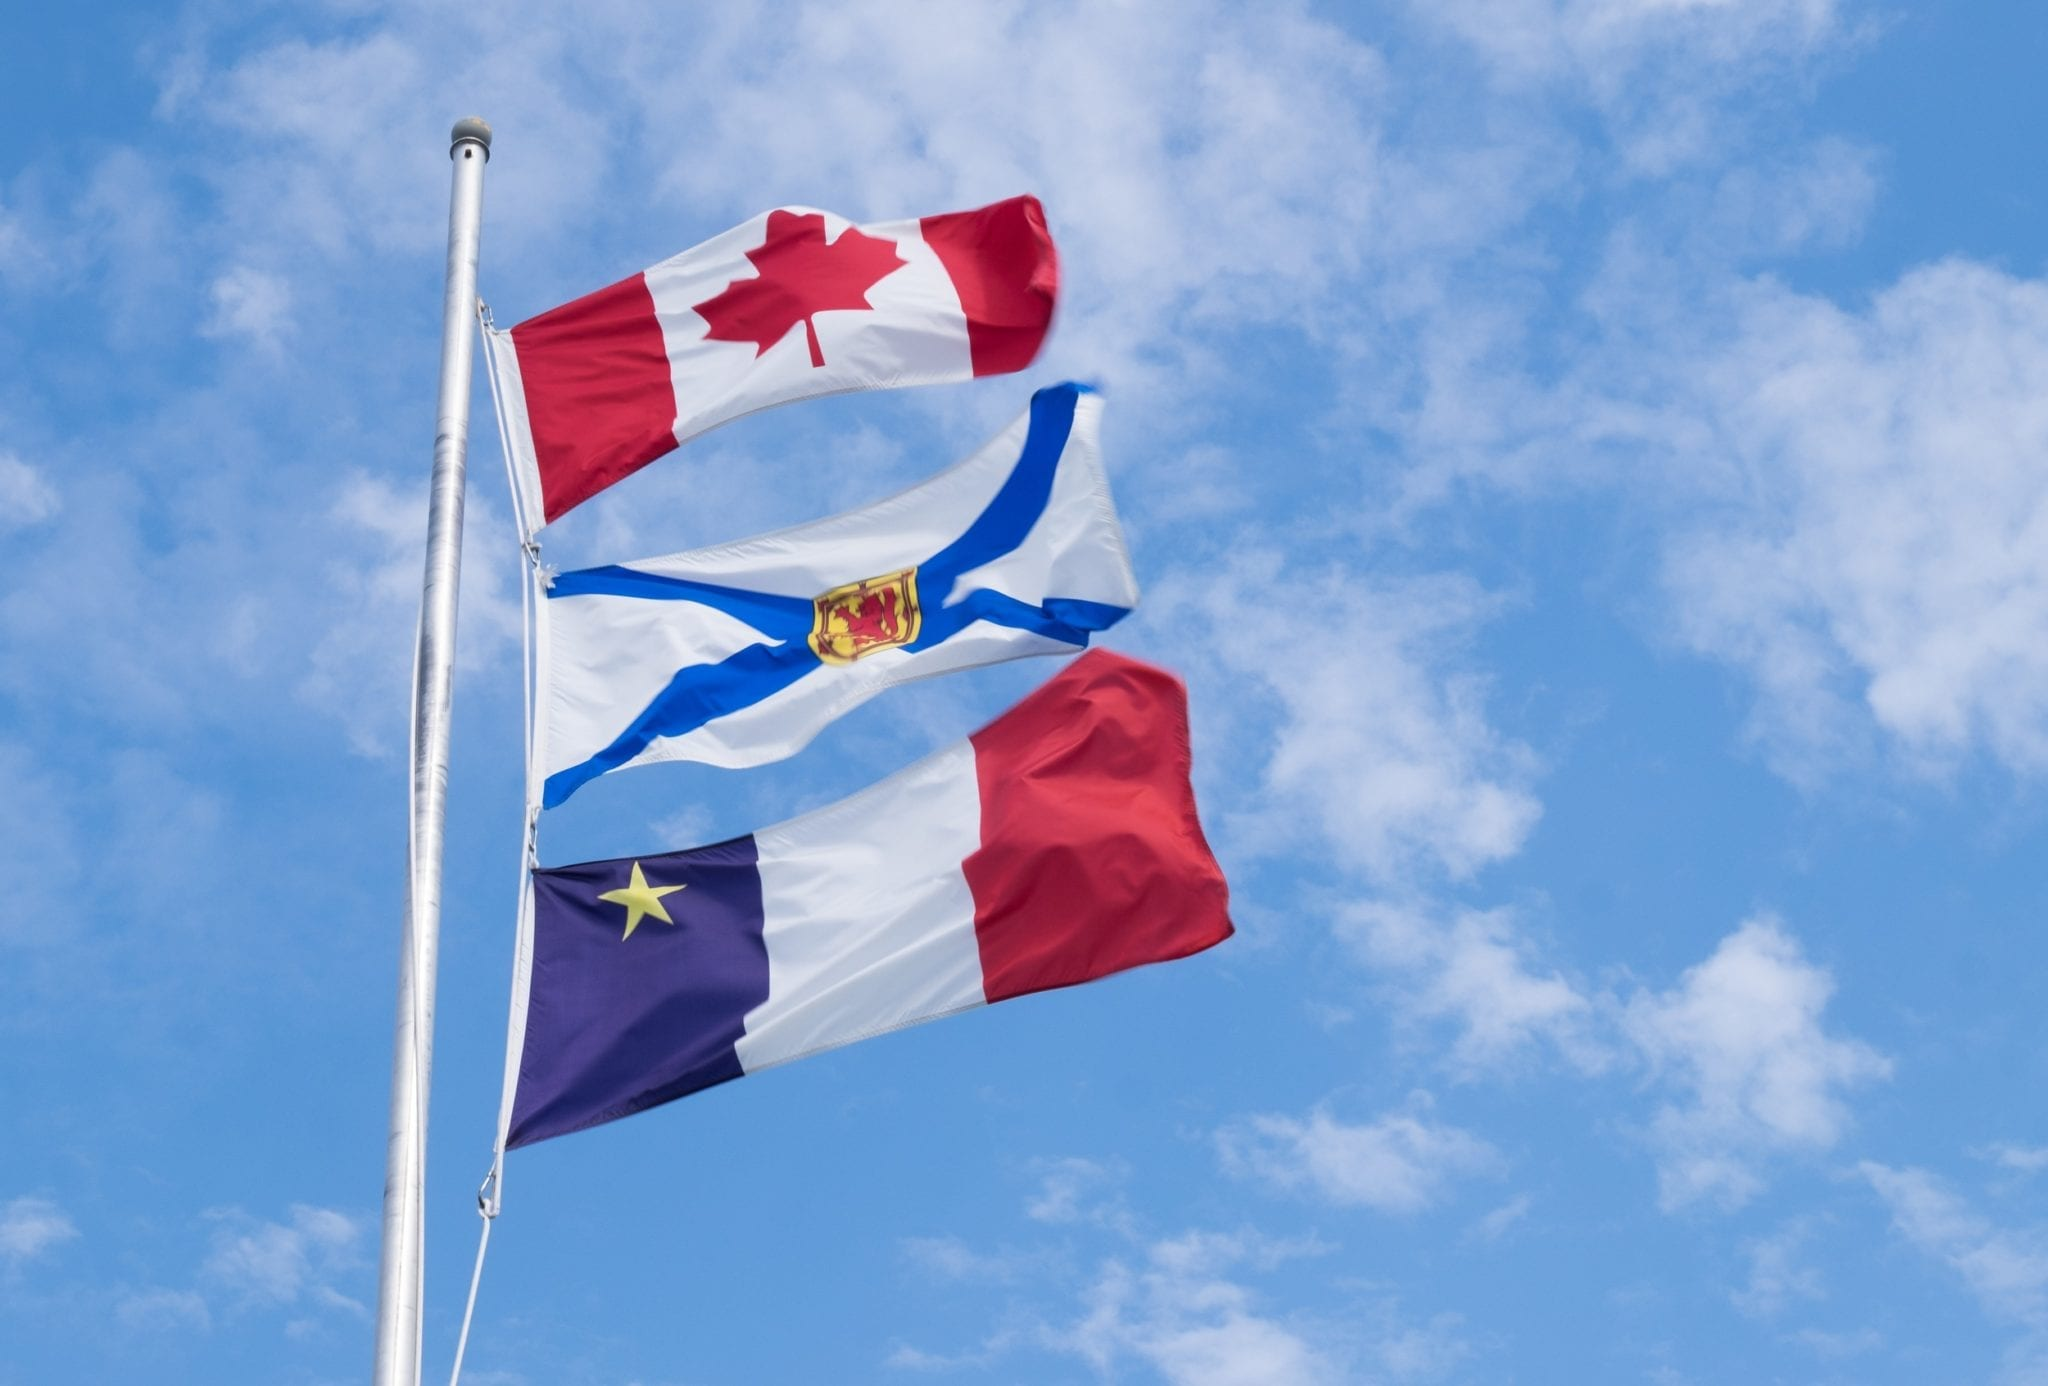 The Canadian, Nova Scotian, and Acadian flags set against a blue sky.